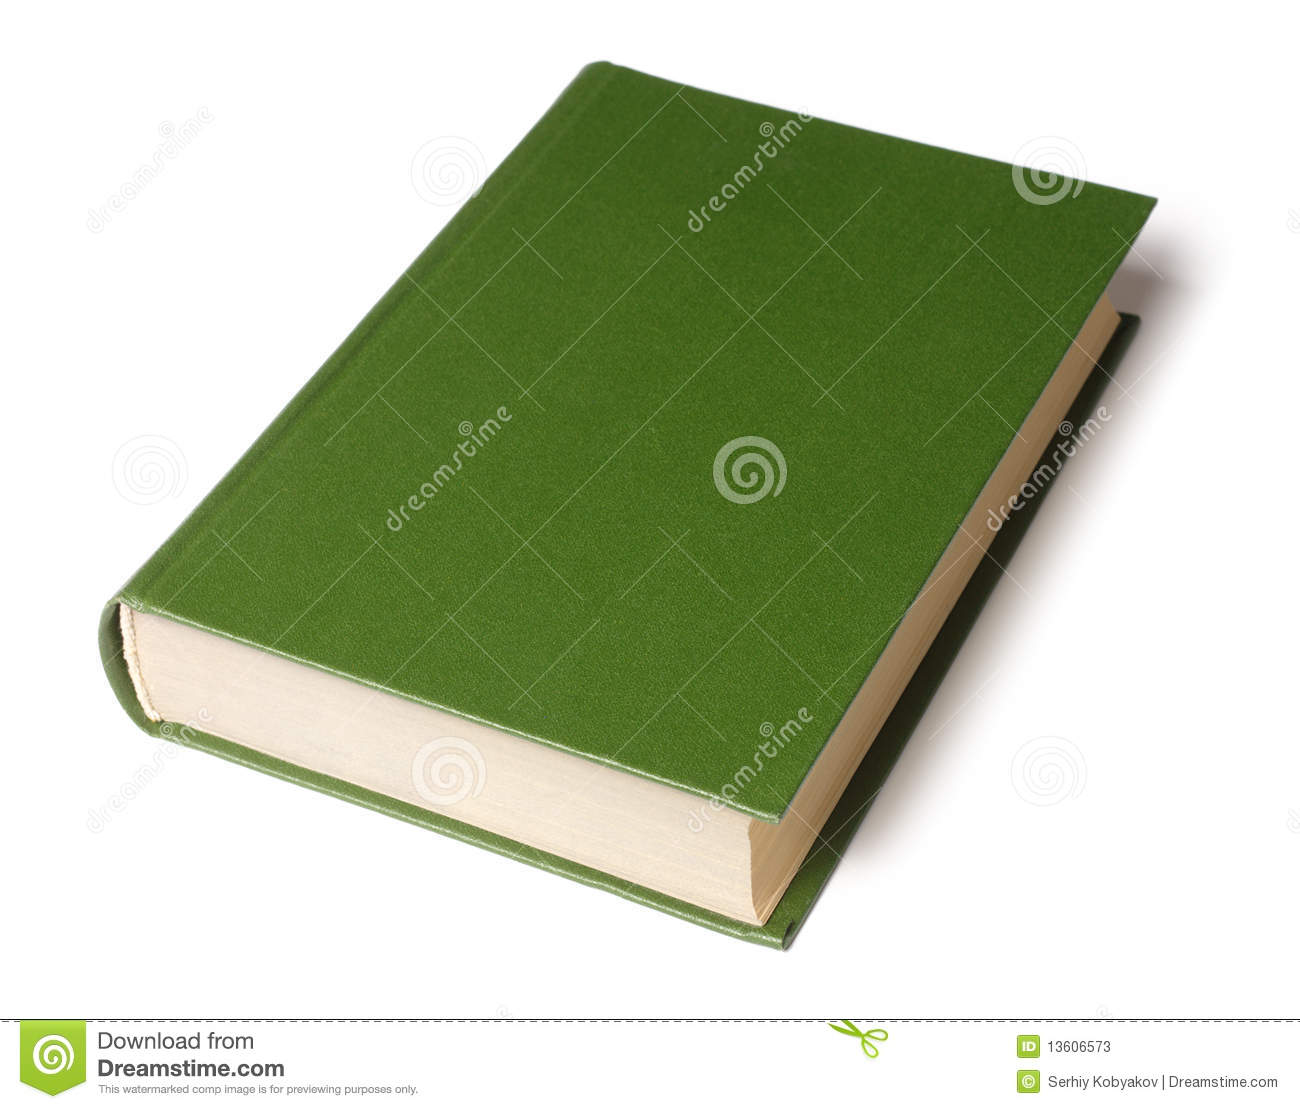 single green book 13606573